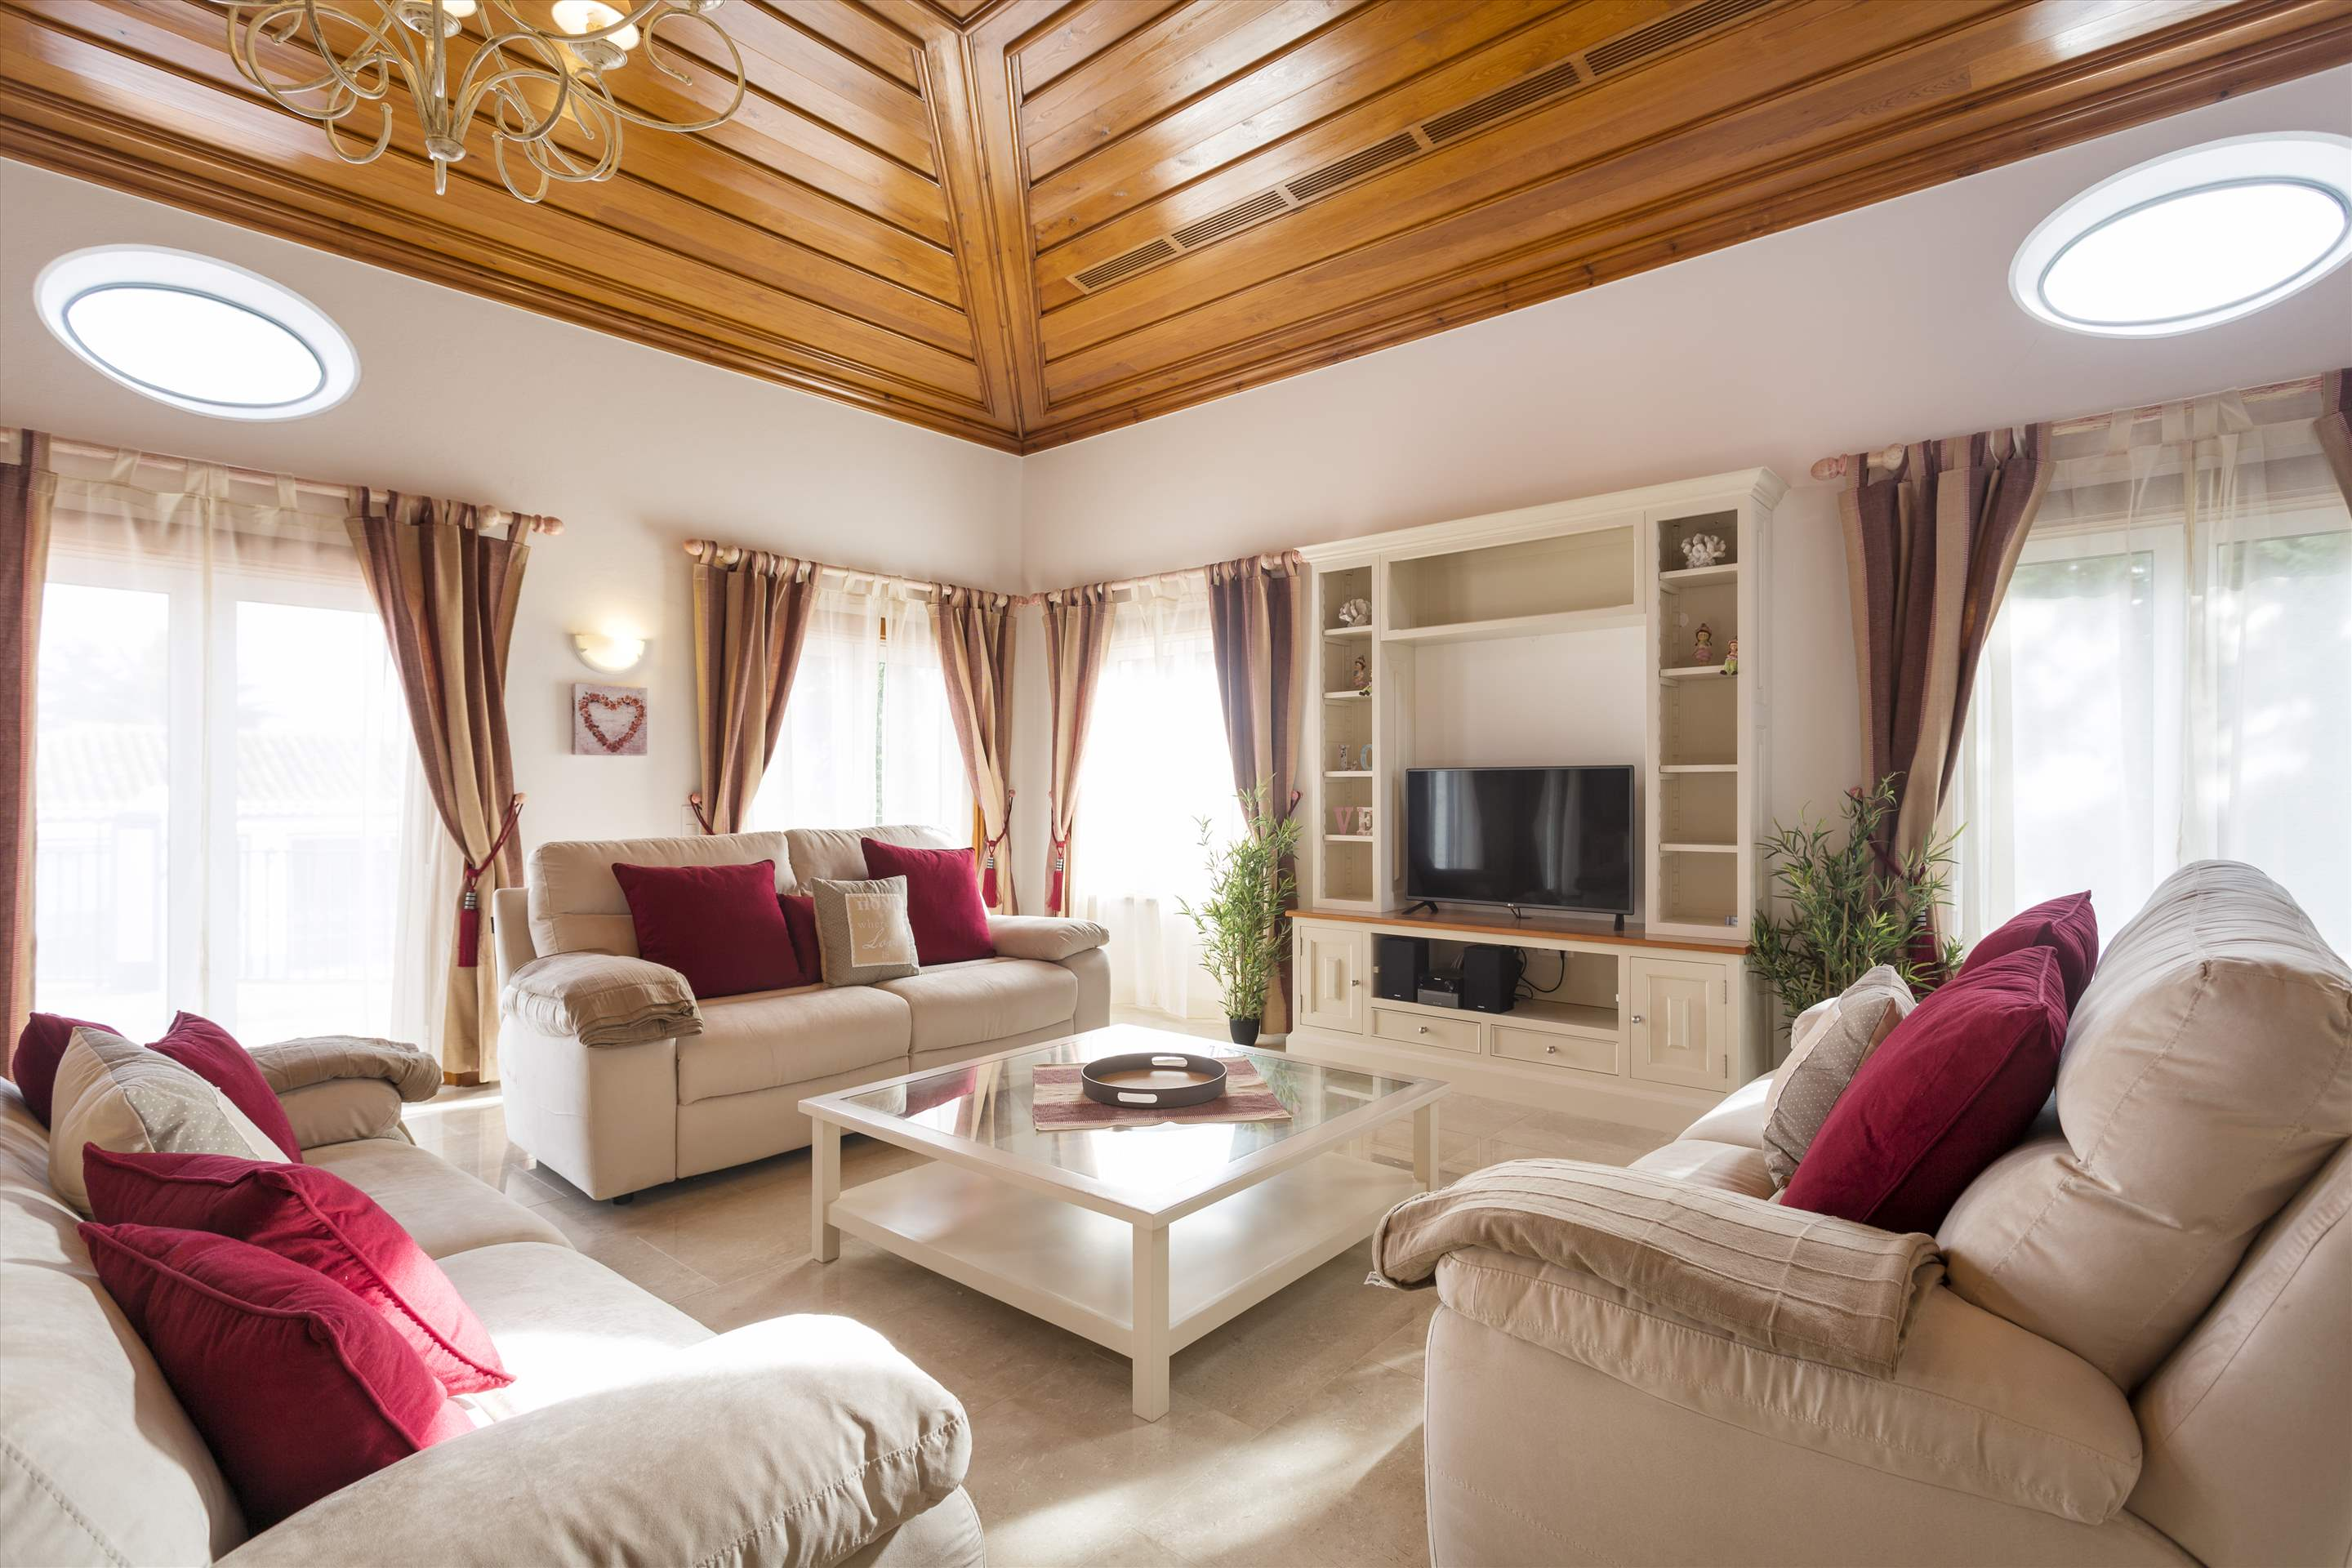 Villa Milho, Four Bedroom Rate, 4 bedroom villa in Vilamoura Area, Algarve Photo #3